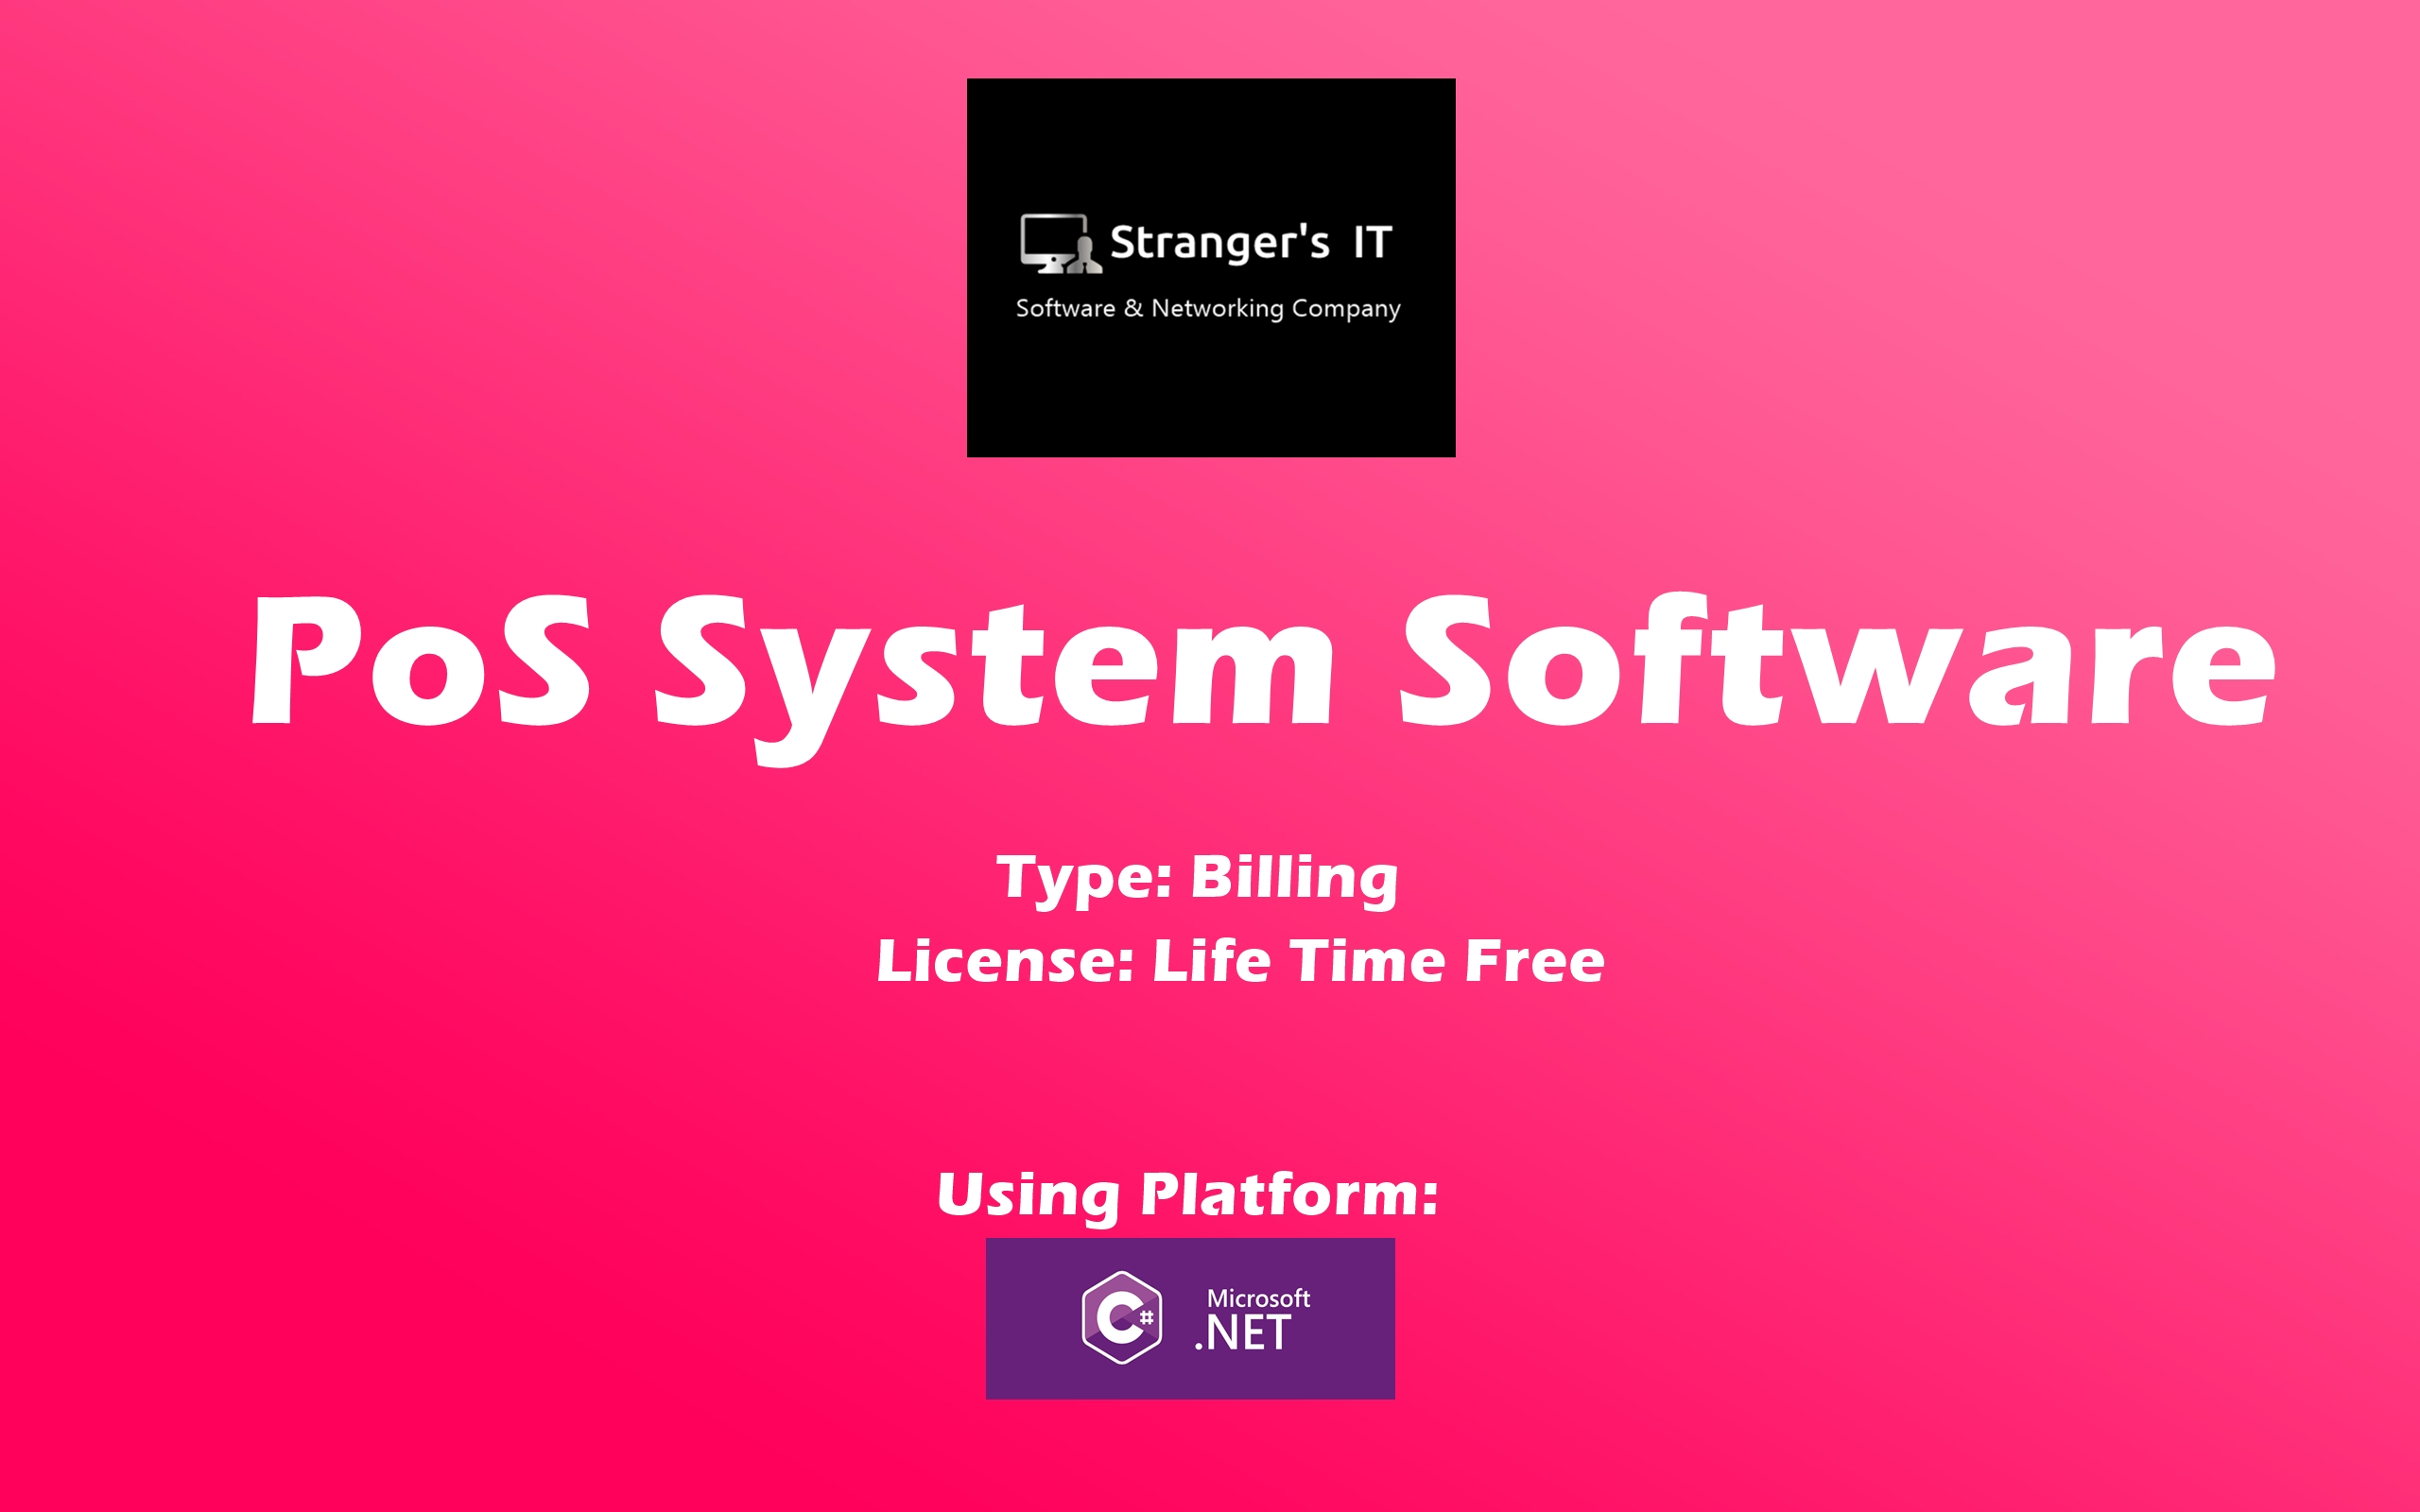 Create PoS System Software (point of sale system software) for your Enterprise